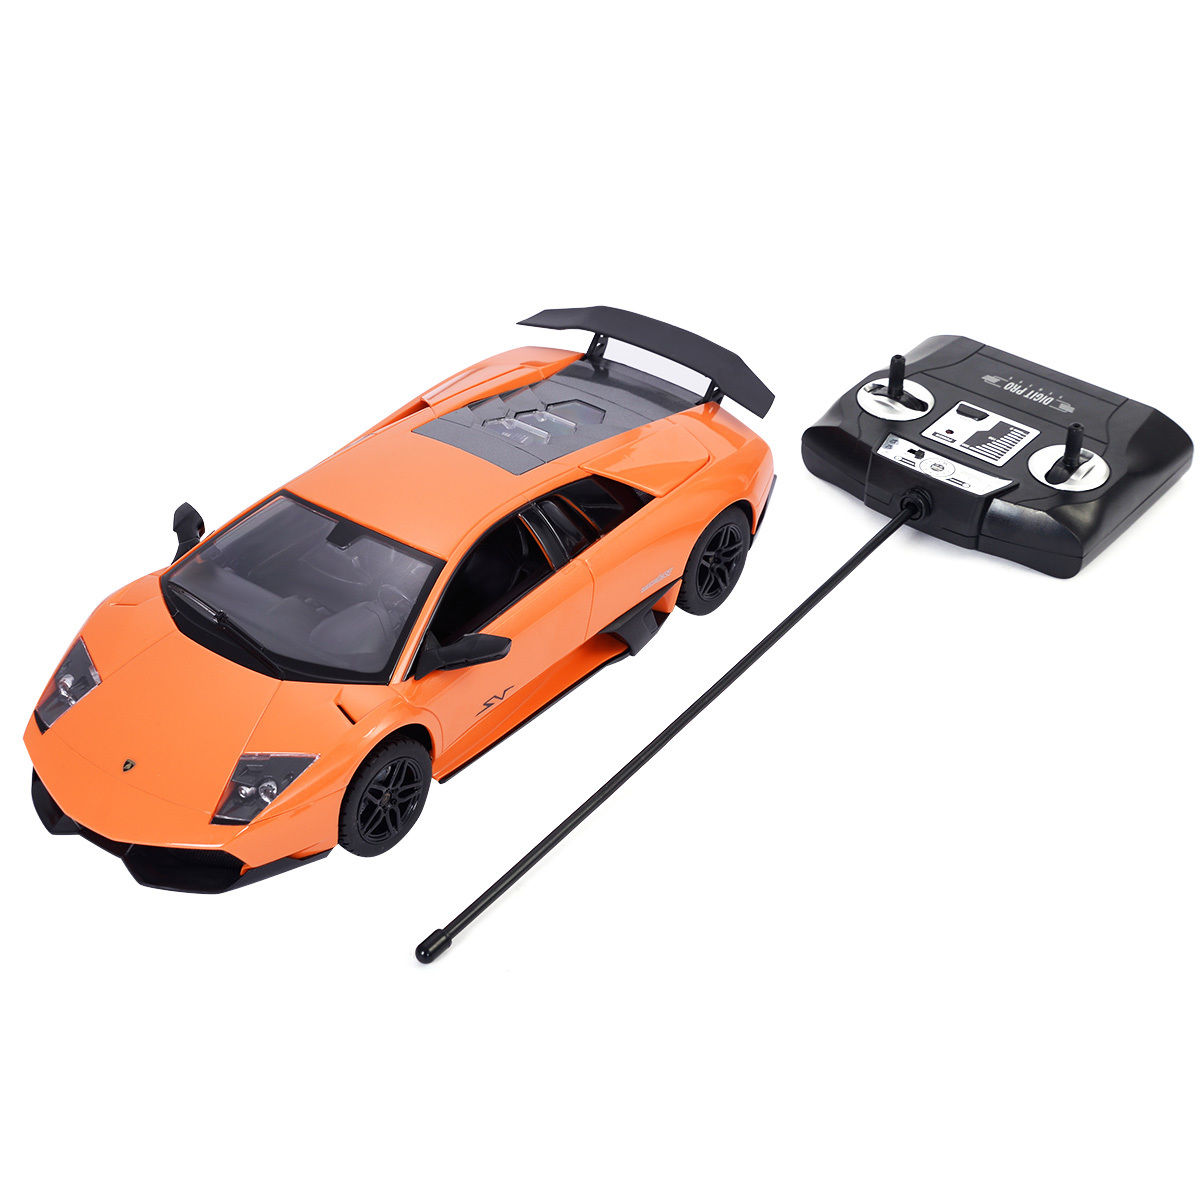 GHP 1/14 Scale Orange Lamborghini Murcielago LP670-4 Radio Remote Controlled Toy Car